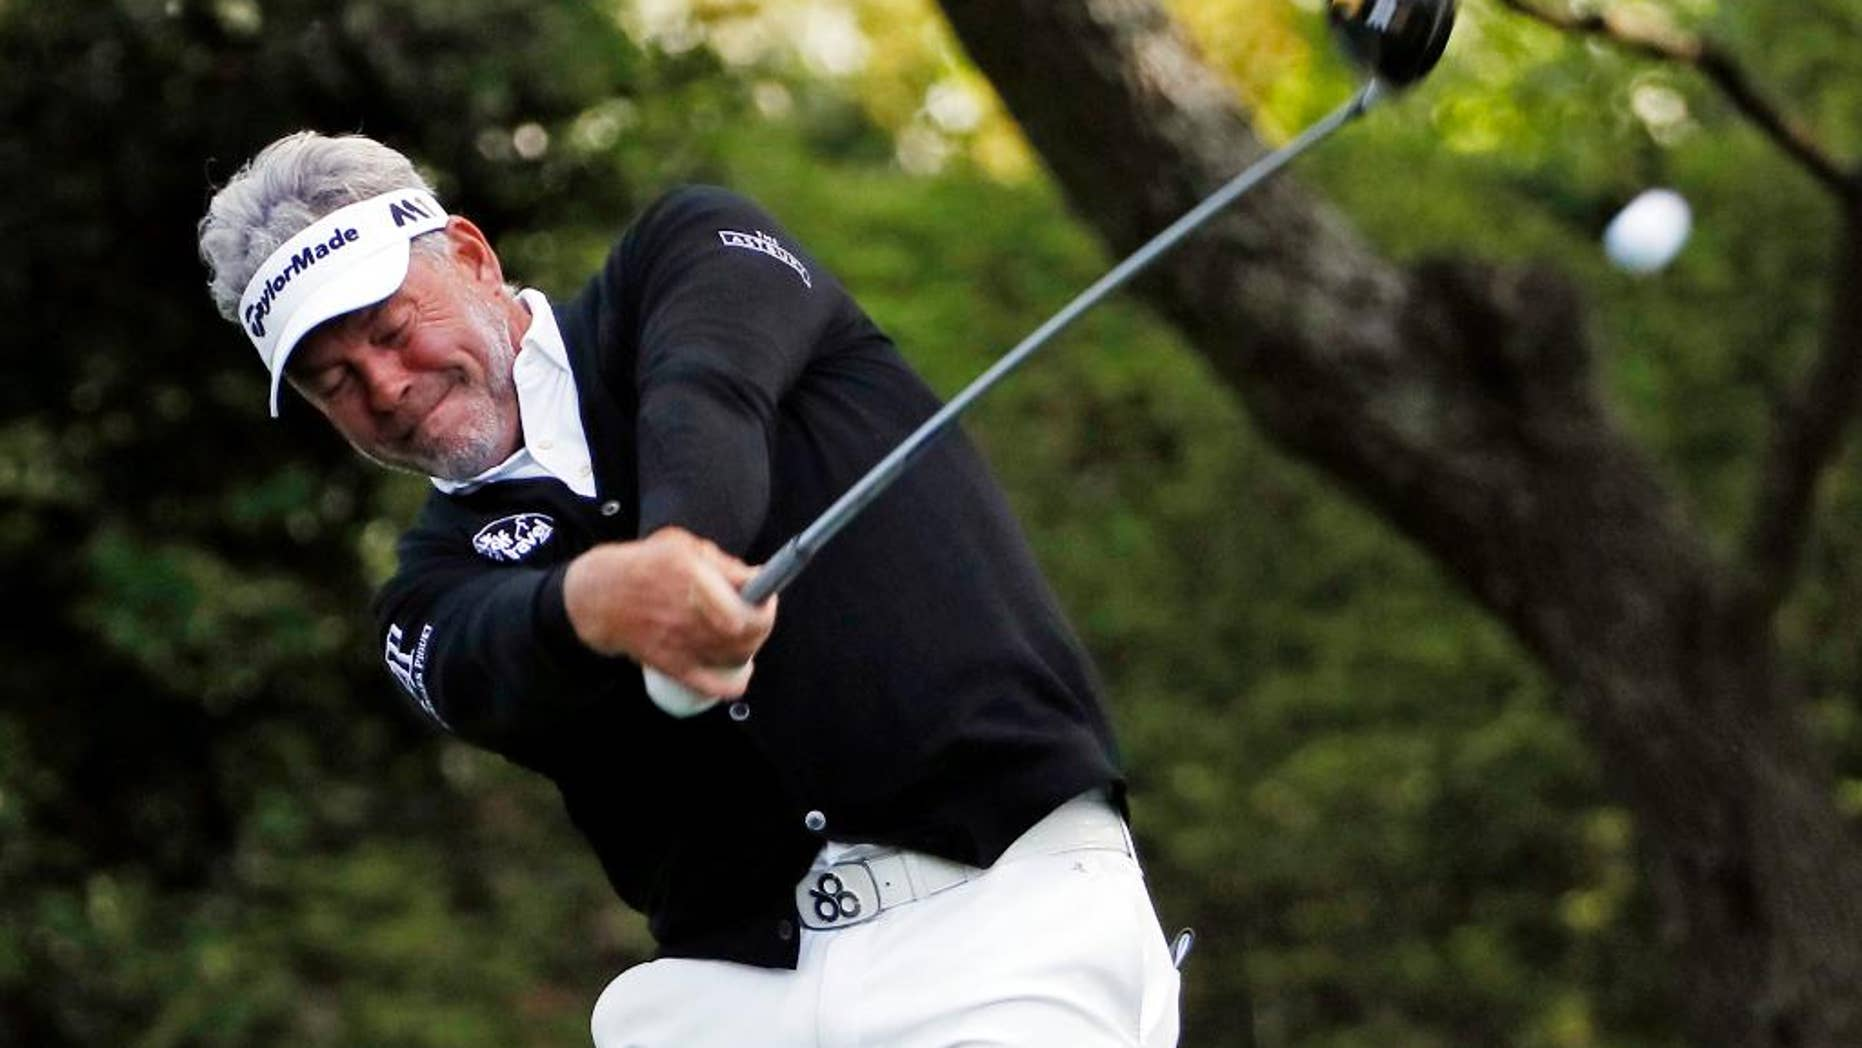 Darren Clarke, of Northern Ireland,  tees off on the second hole during the second round of the Masters golf tournament Friday, April 8, 2016, in Augusta, Ga. (AP Photo/David J. Phillip)